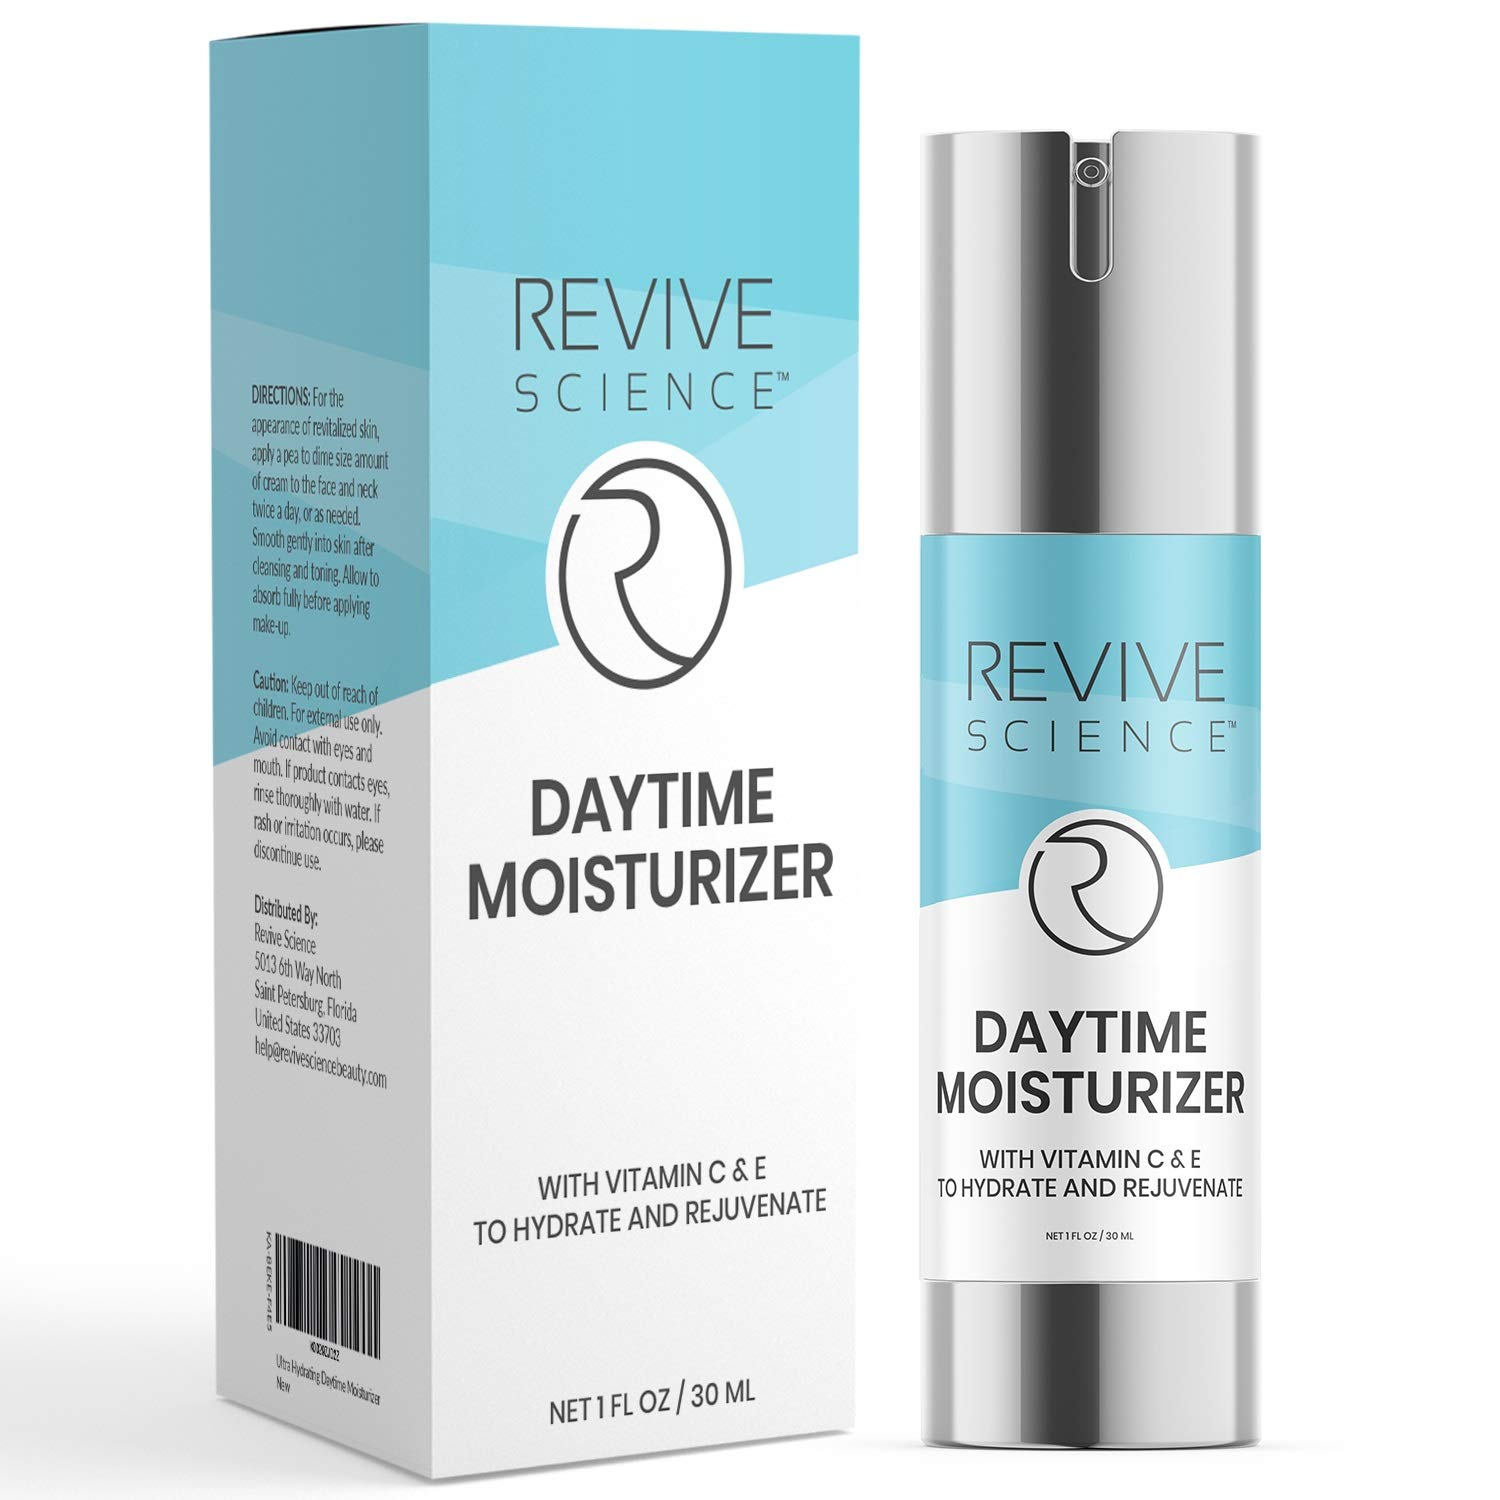 Revive Science Ultra Hydrating Daytime Face Moisturizer Cream - Anti Aging Face Lotion with Vitamin C & E - Face Moisturizer for Women and Men - Fragrance Free, All skin types (1 fl oz): Beauty